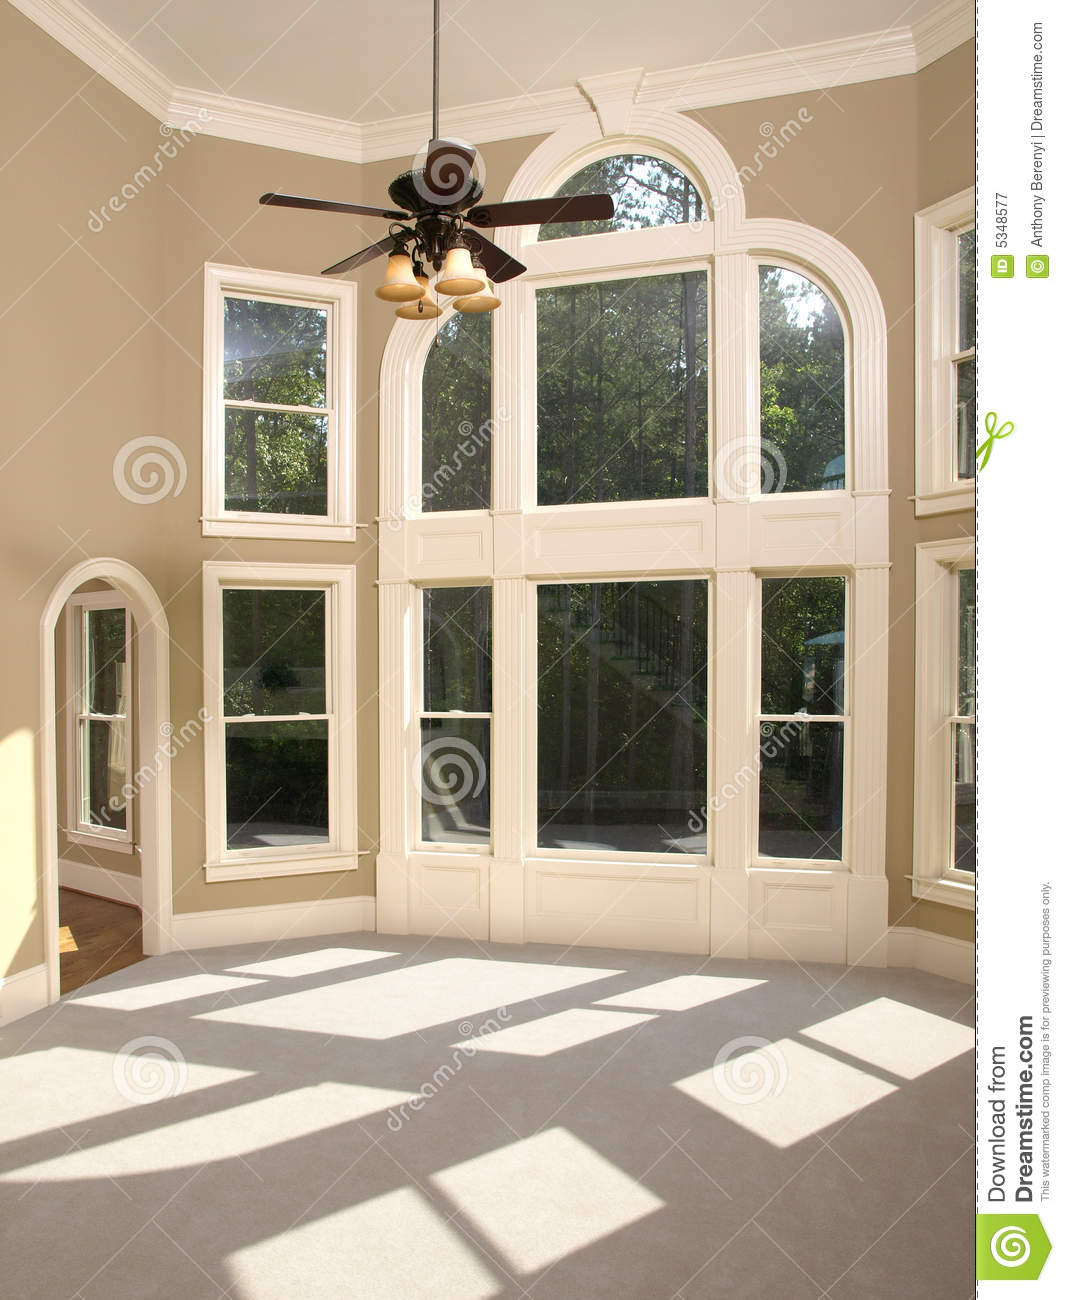 Luxury Model Home Living Room Arched Window Wall Royalty